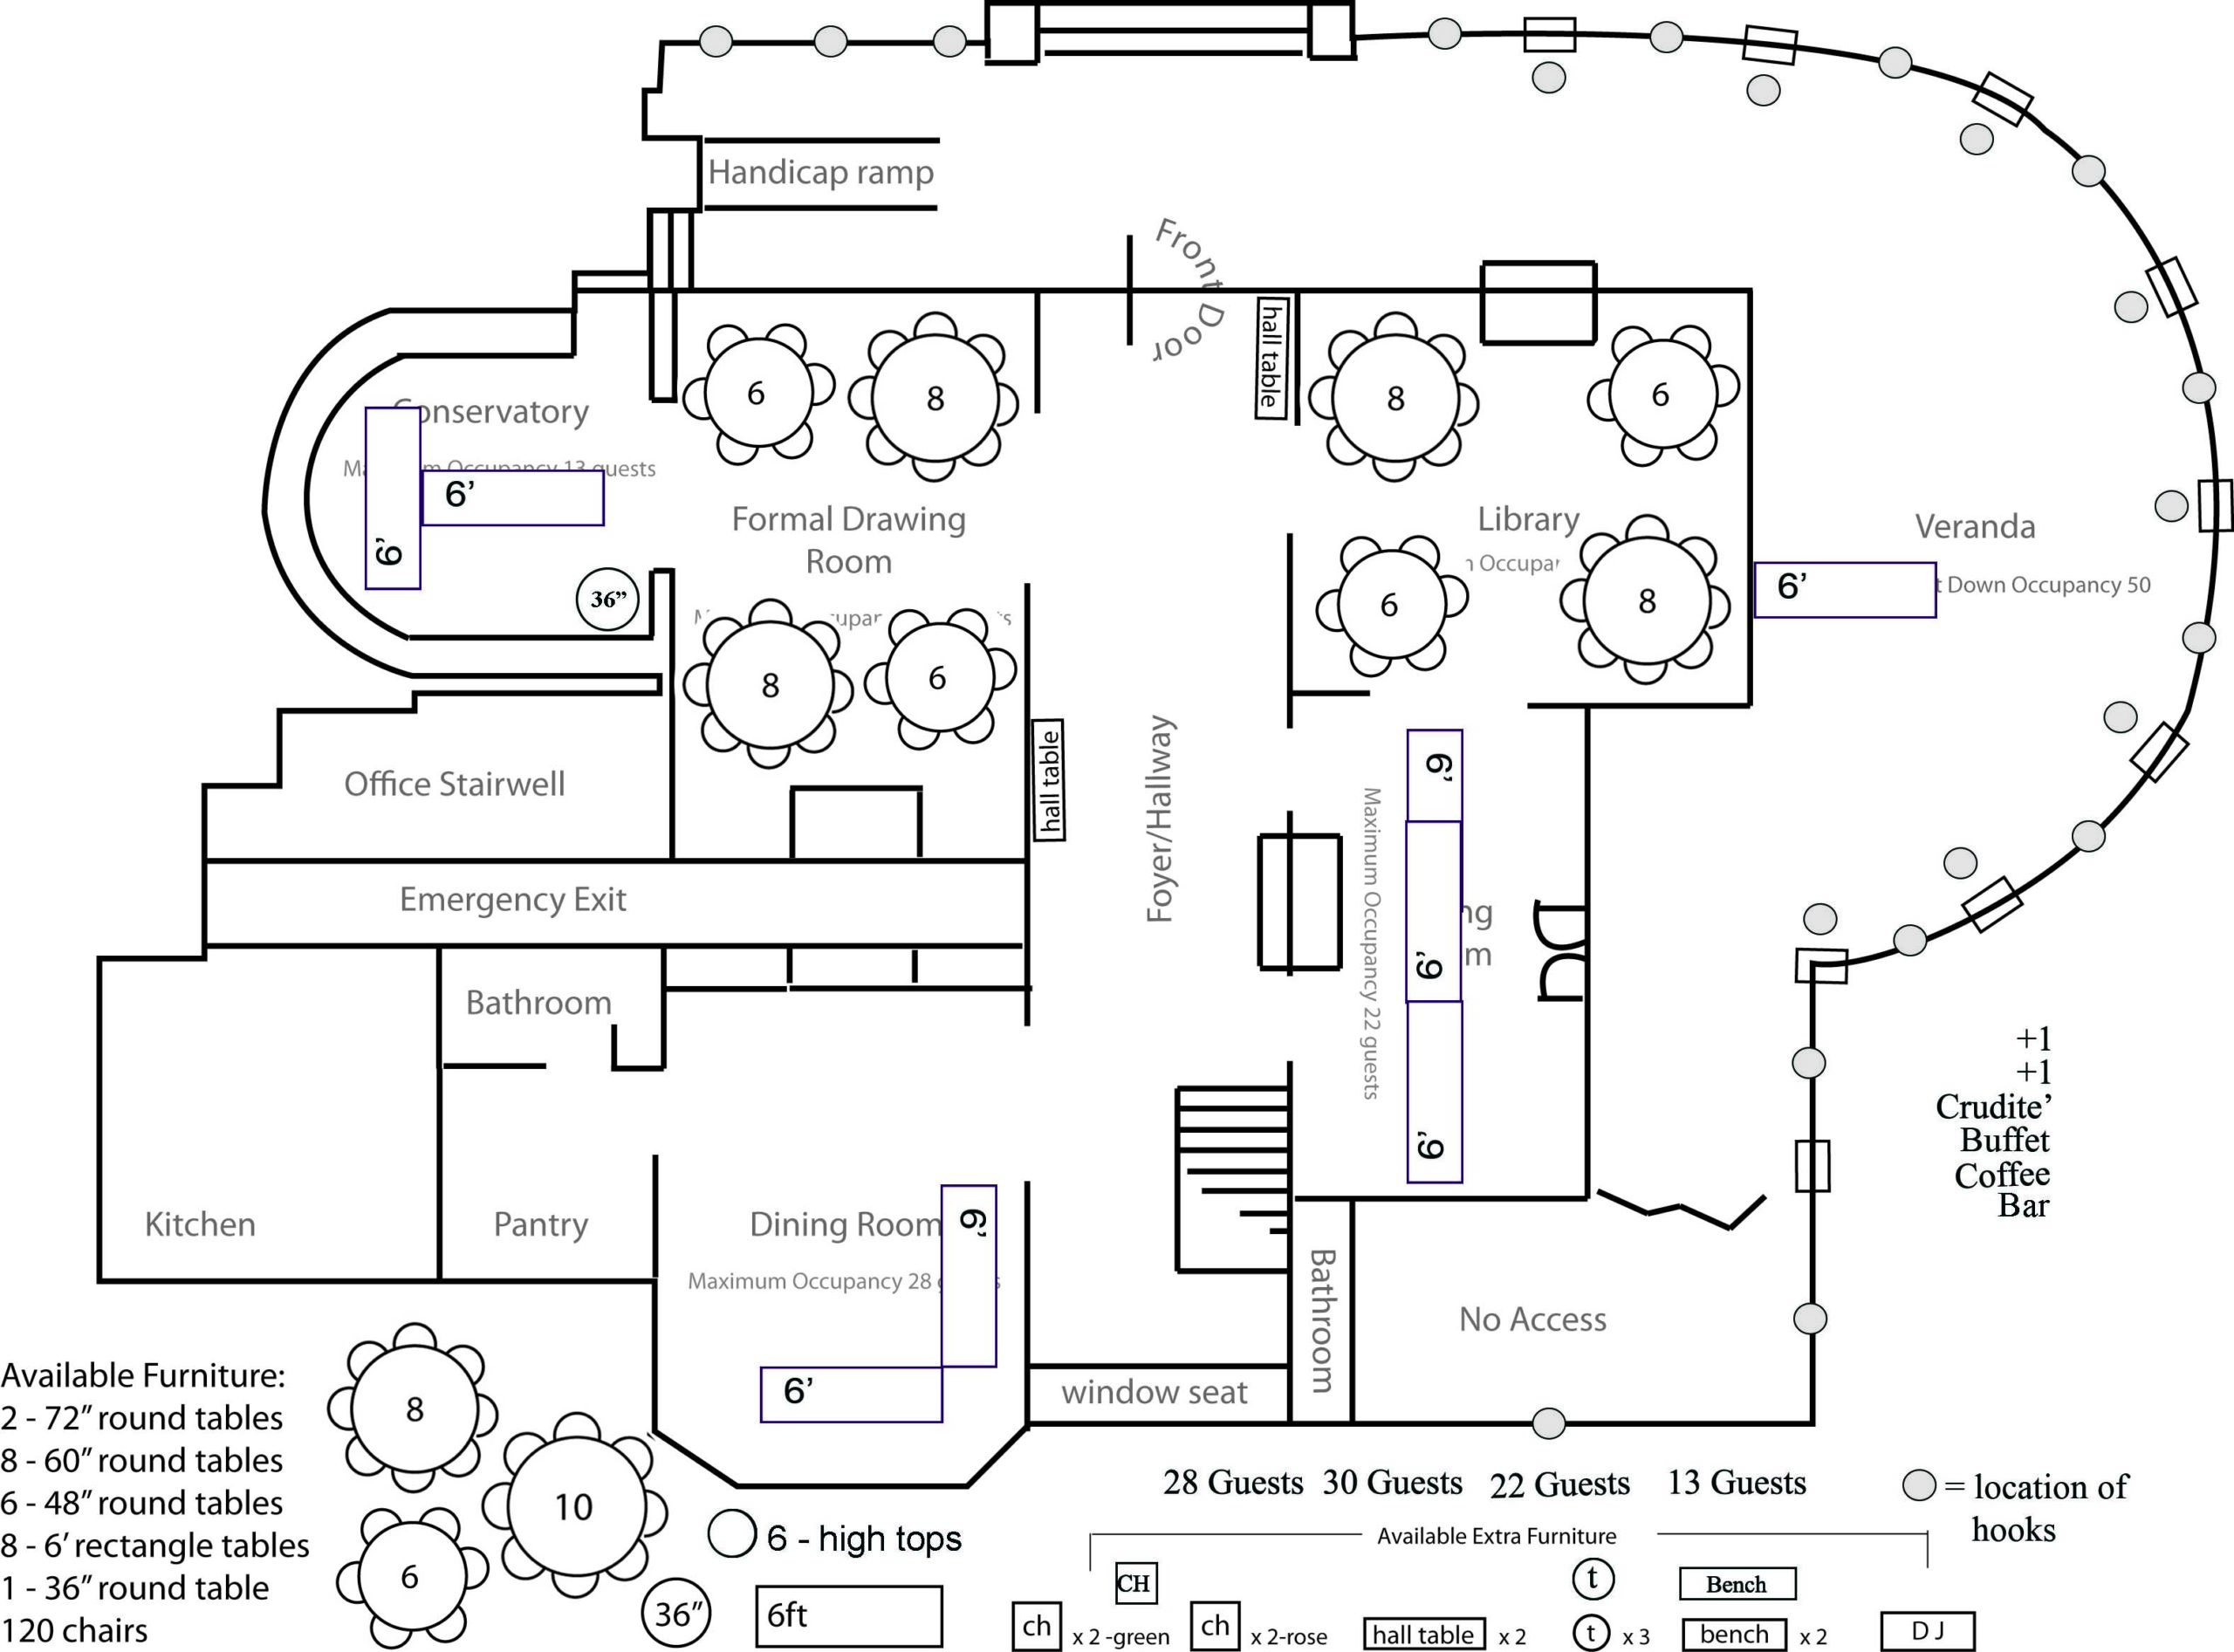 october-wedding-floor-plan